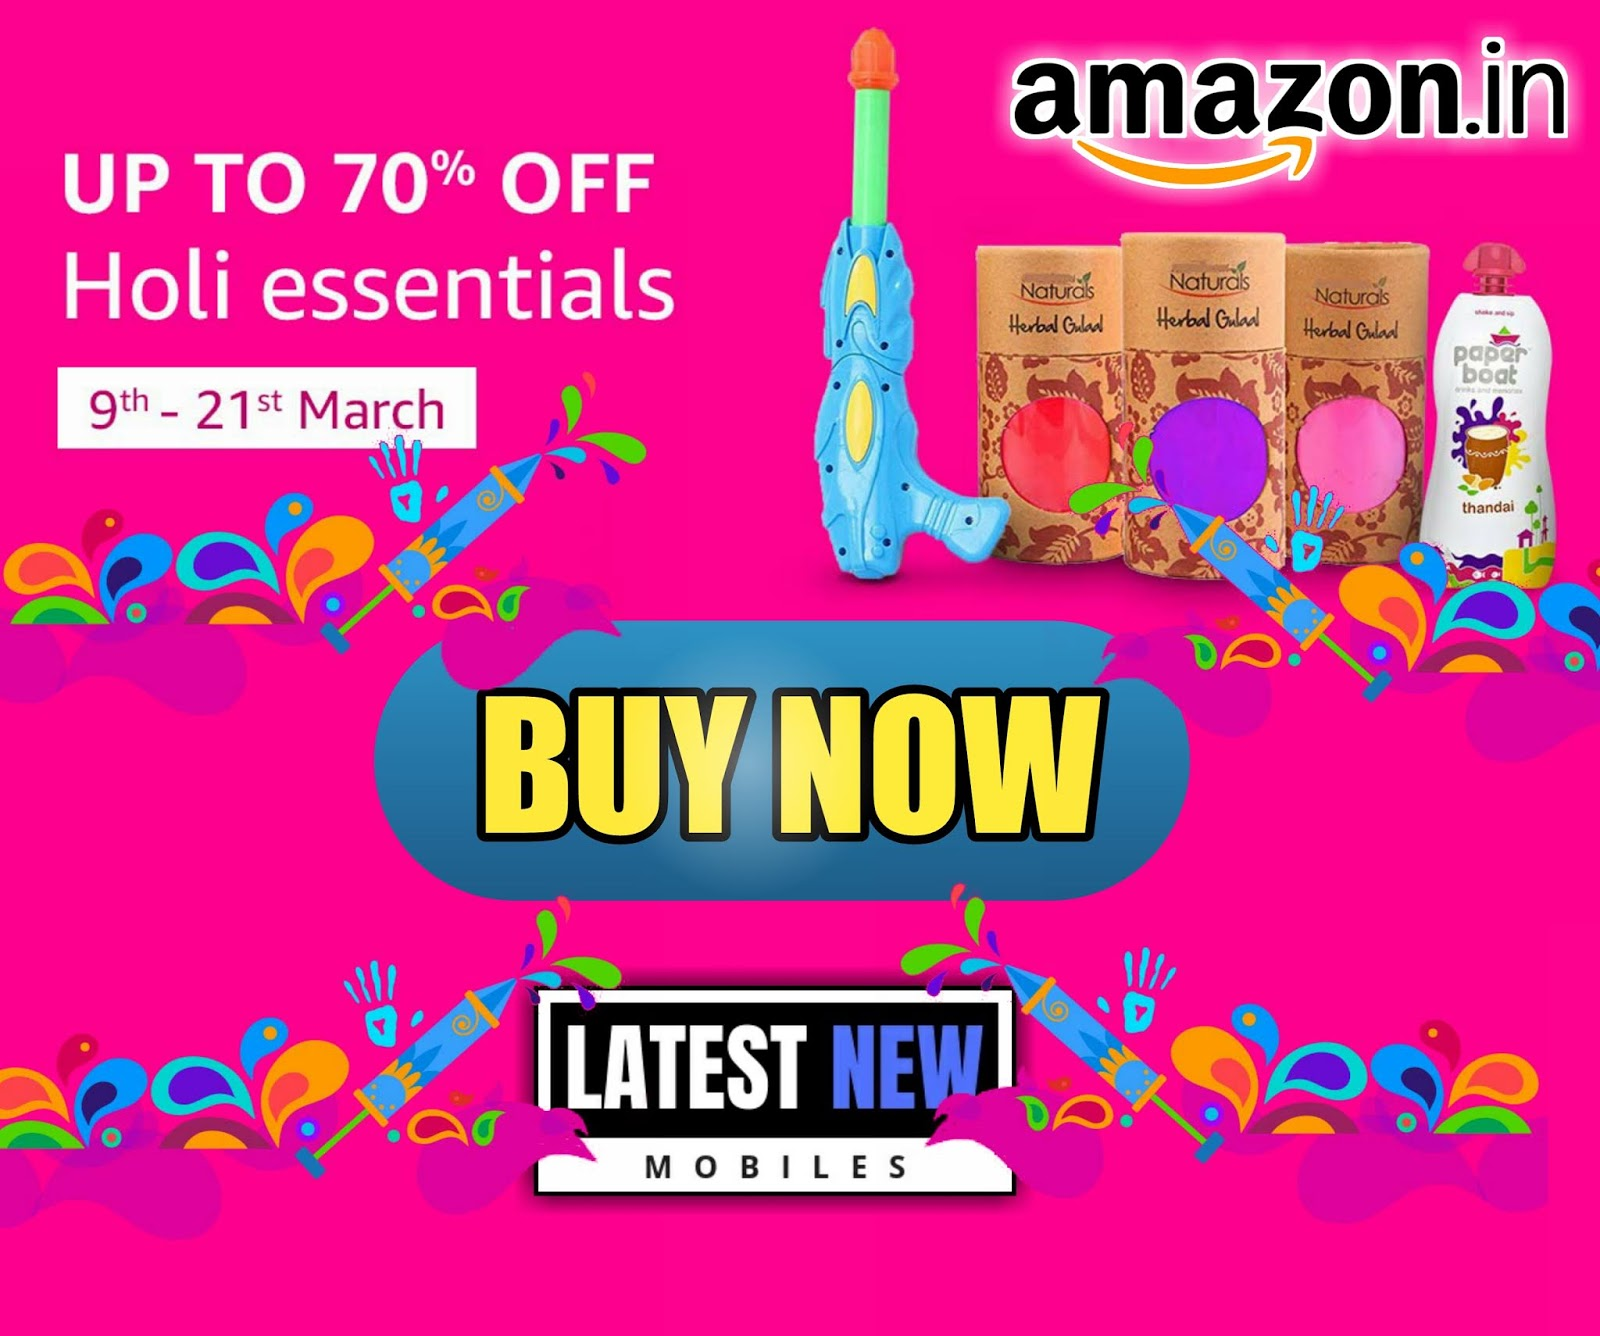 HOLI ESSENTIALS - UP TO 70% OFF